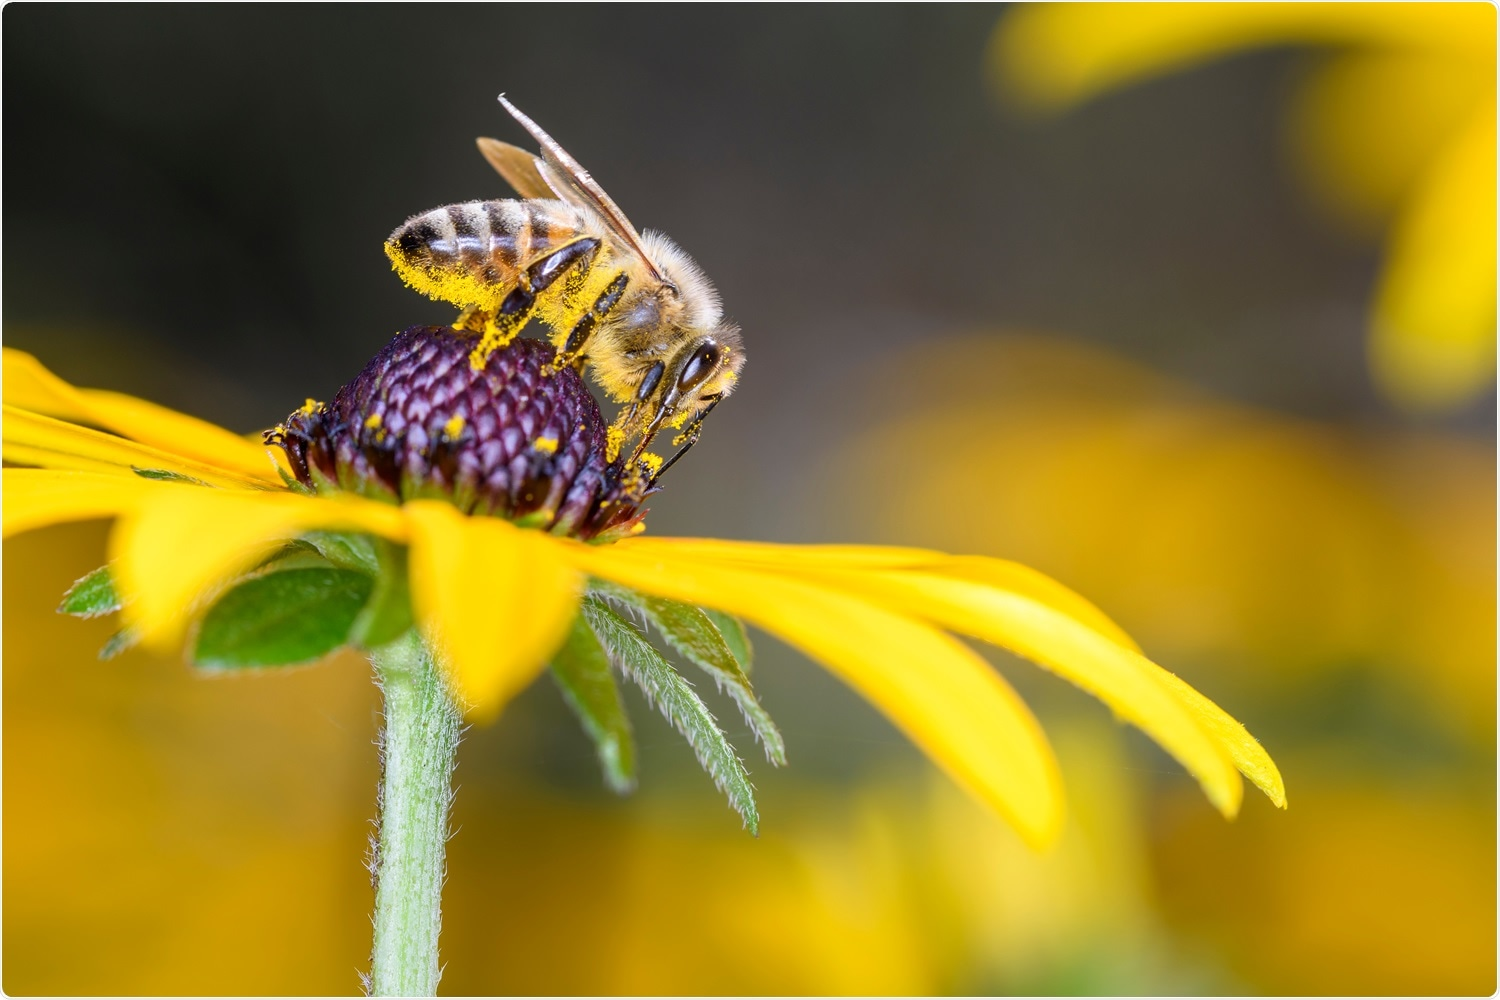 Honeybees can be trained to identify SARS-CoV-2 infected samples, say scientists